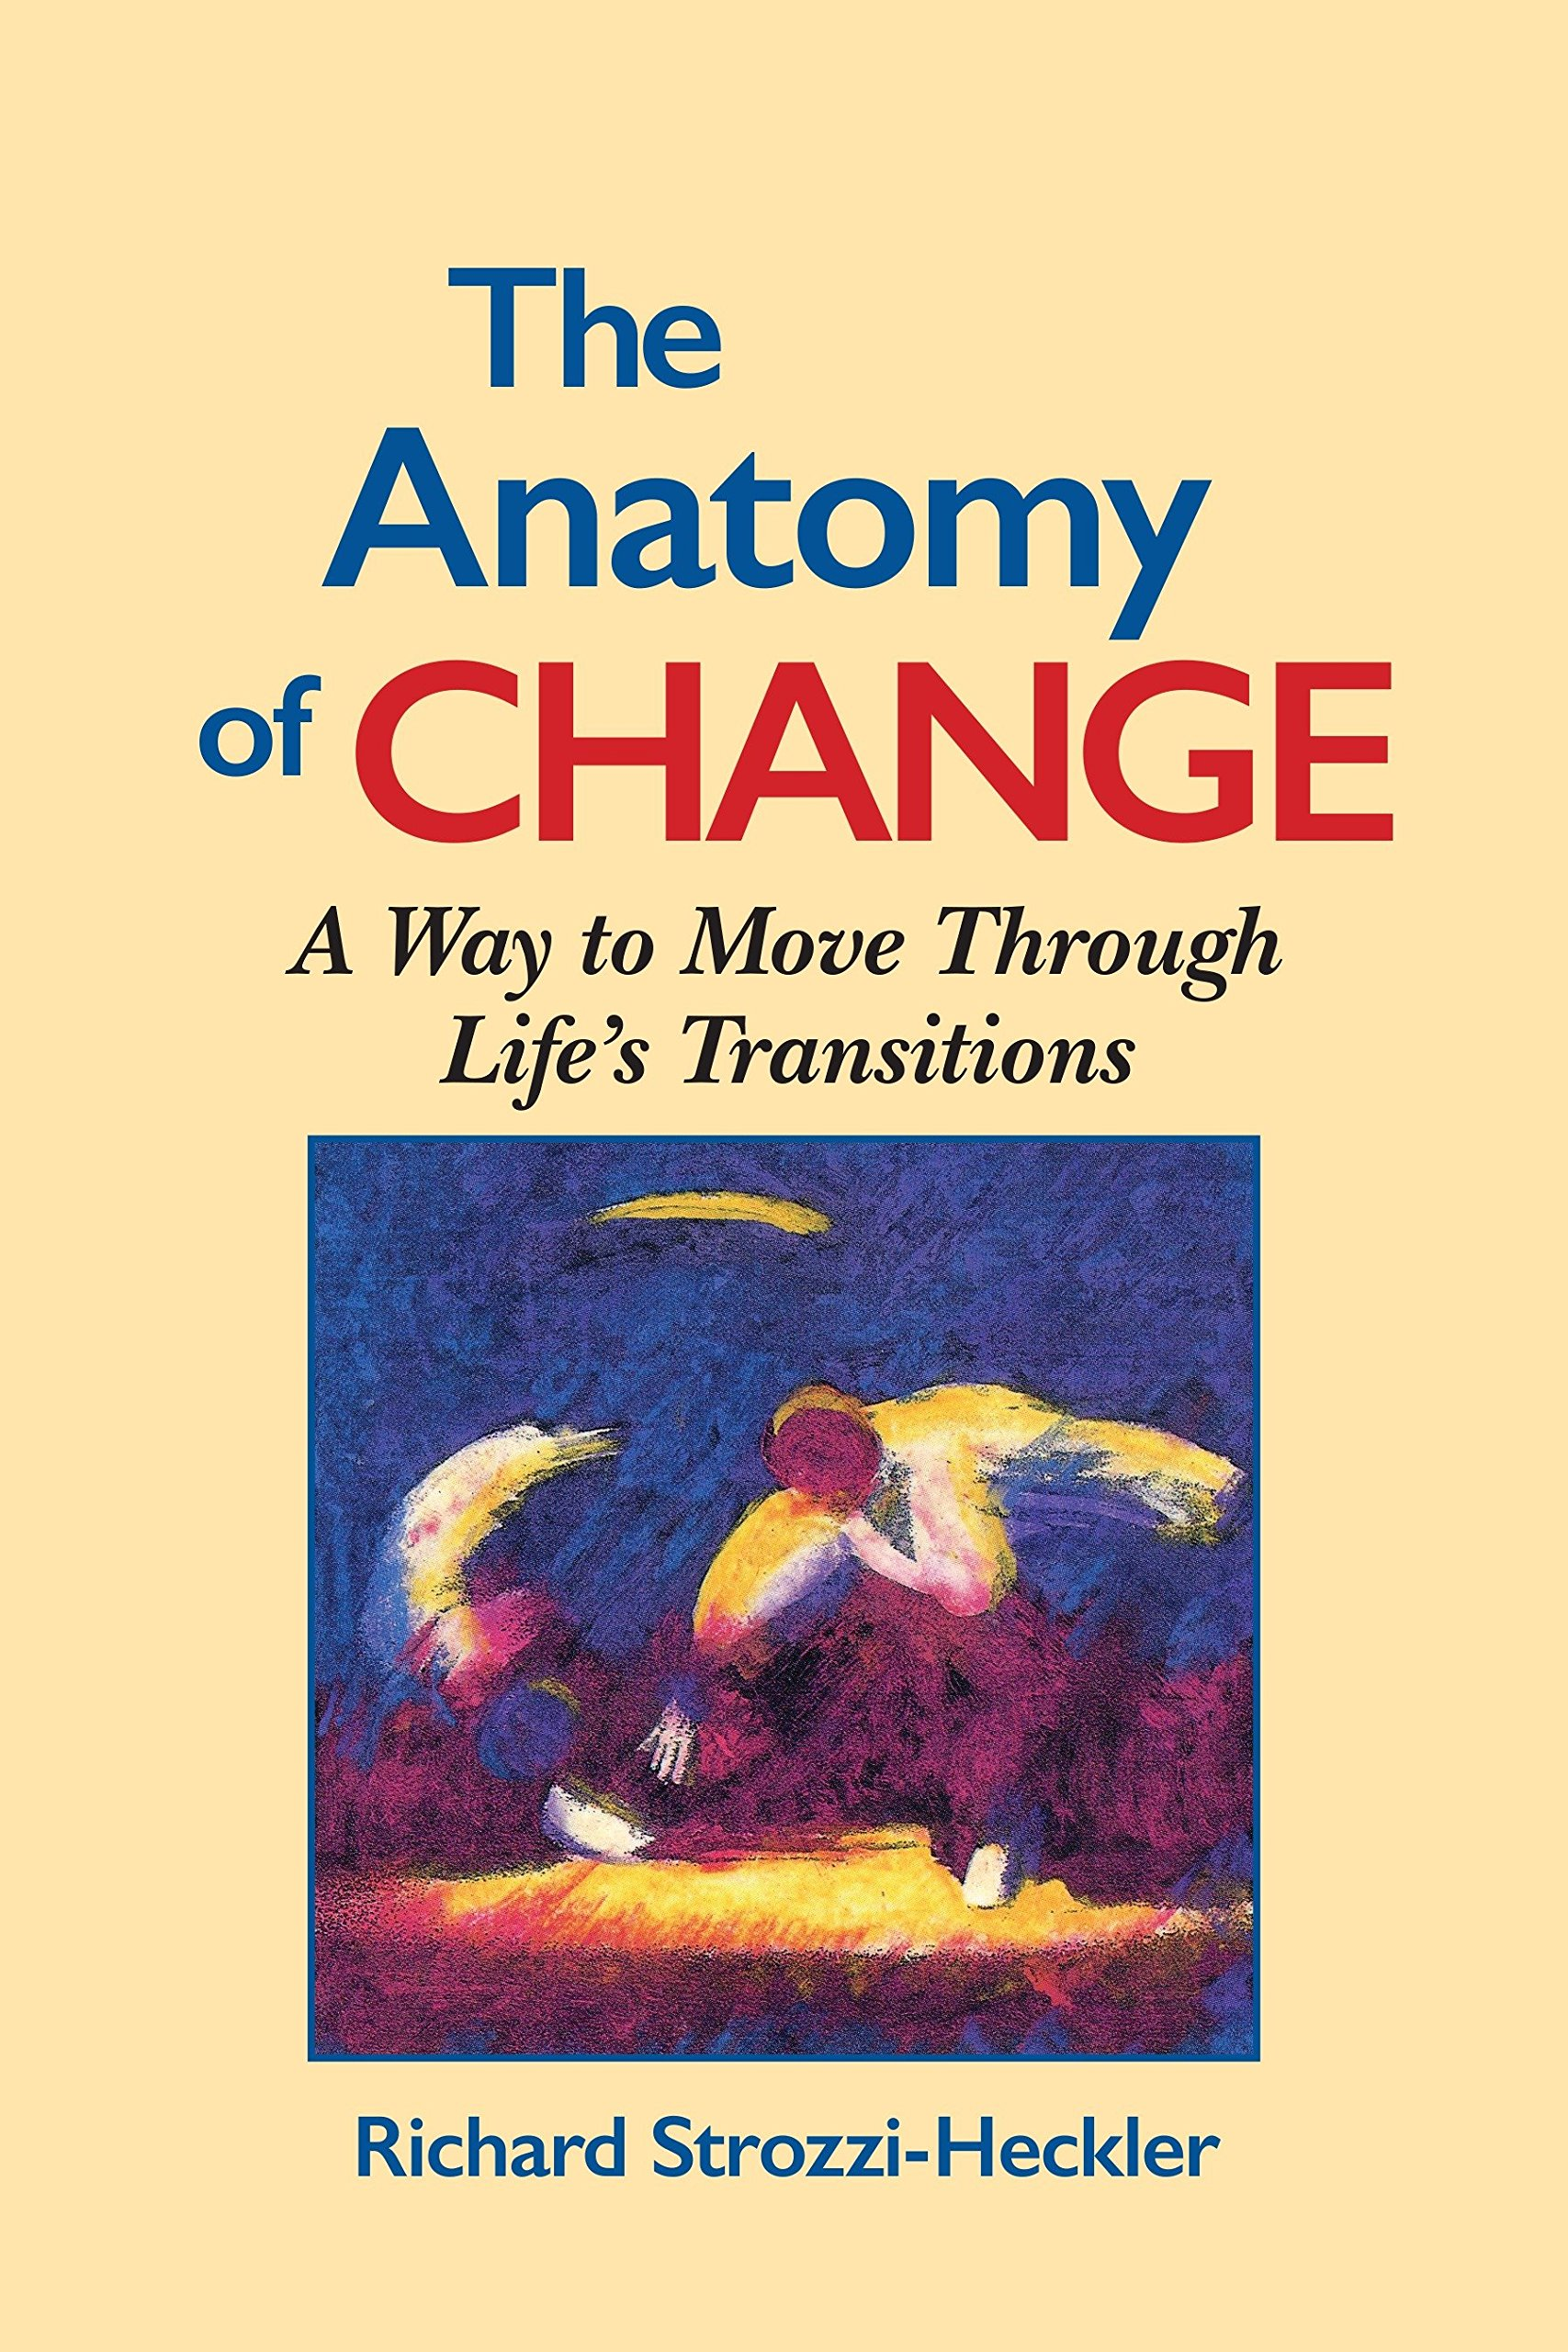 The Anatomy of Change - A Way to Move Through Life's Transitions